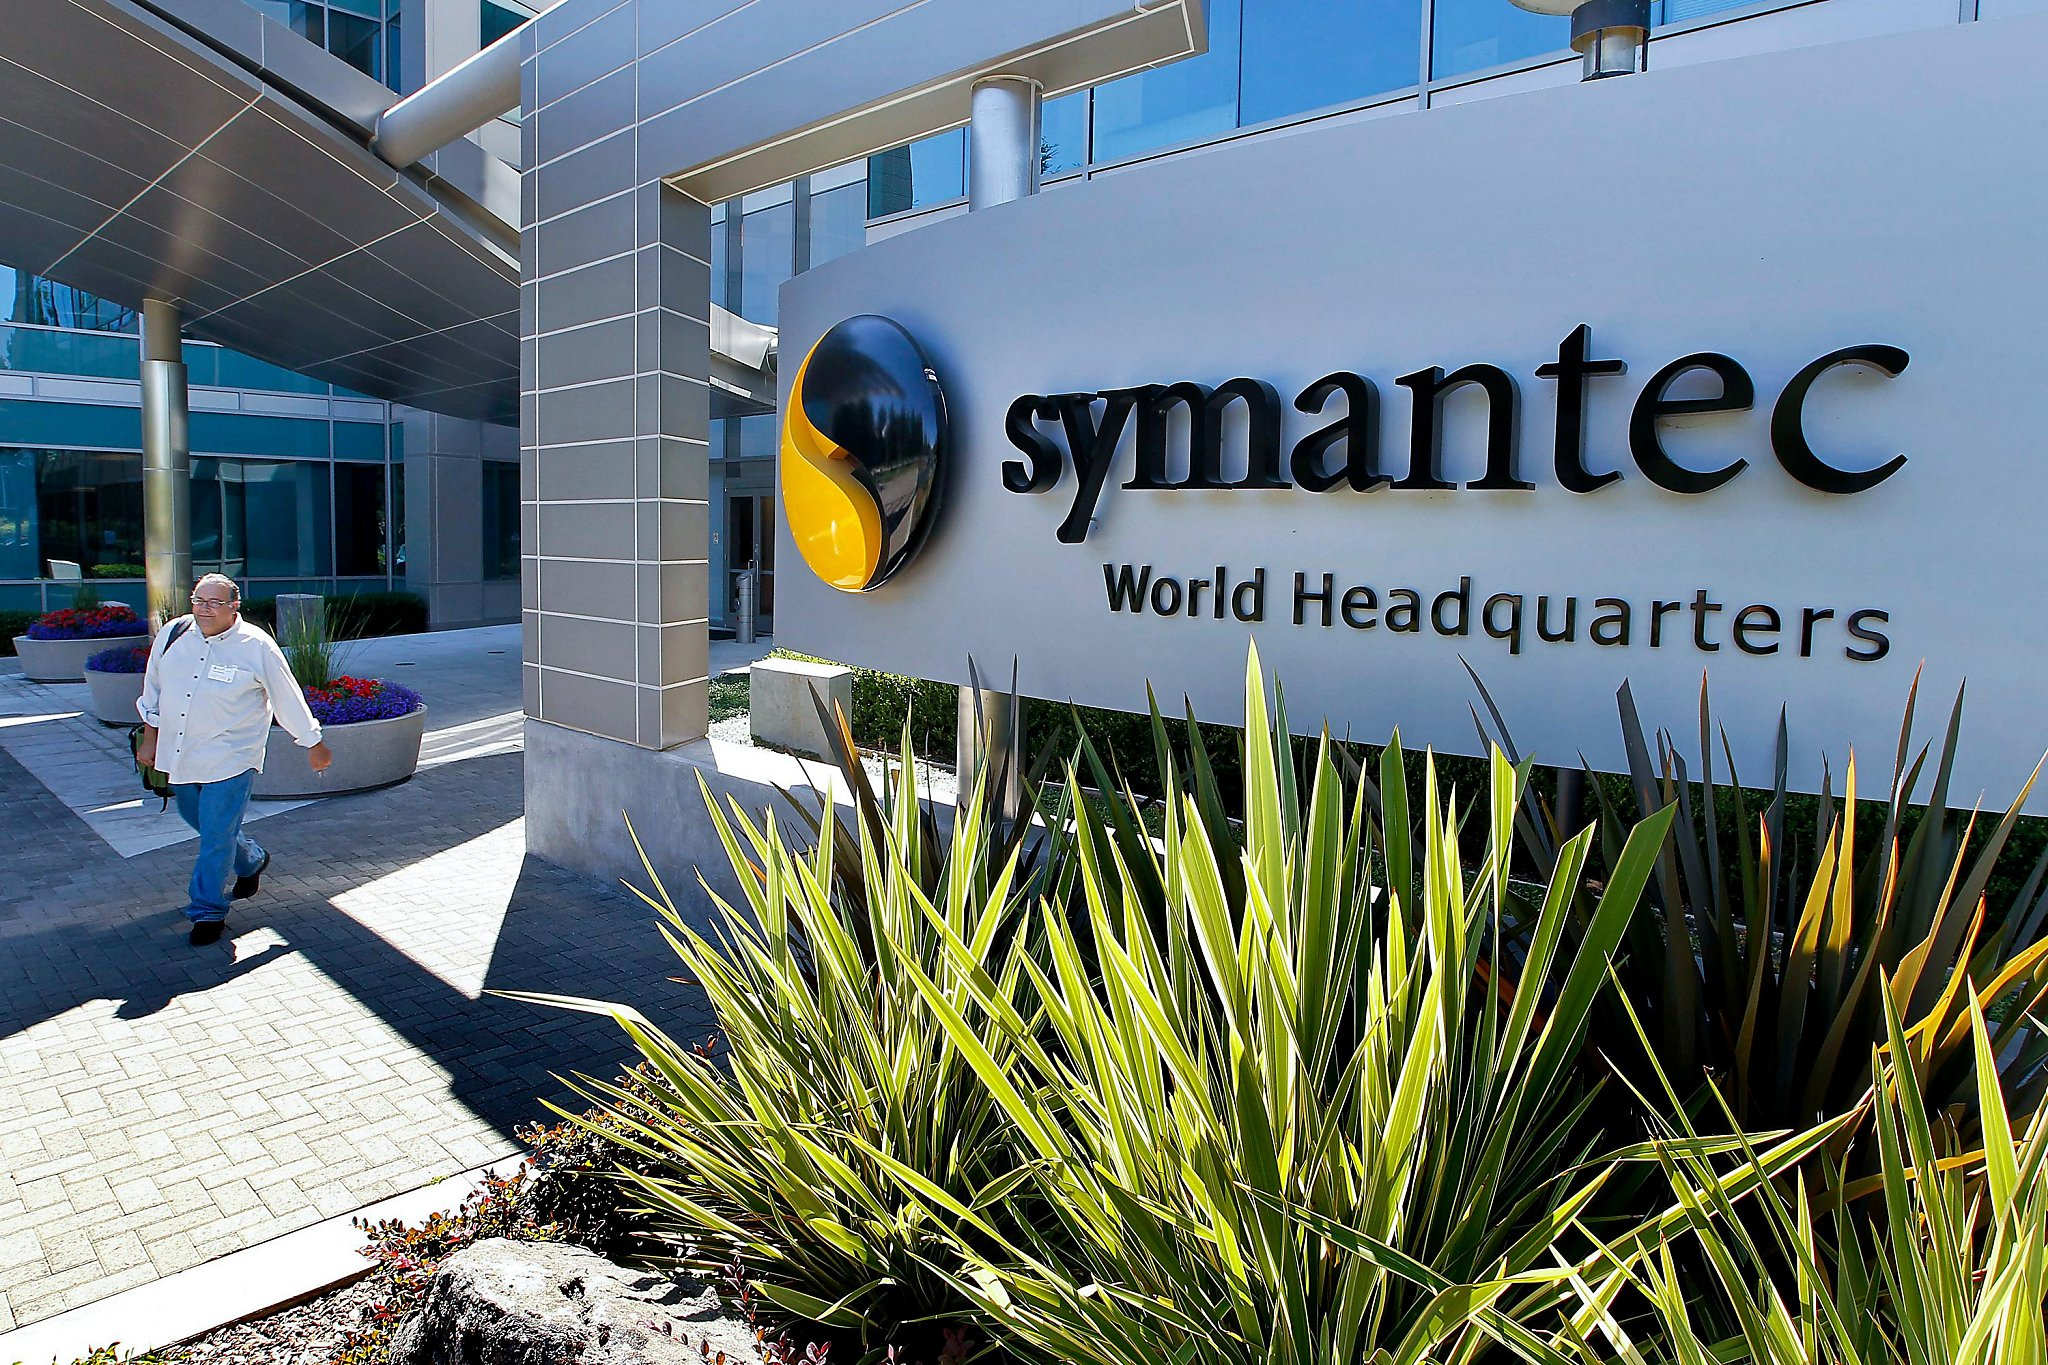 Mountain View cybersecurity giant Symantec begins layoffs